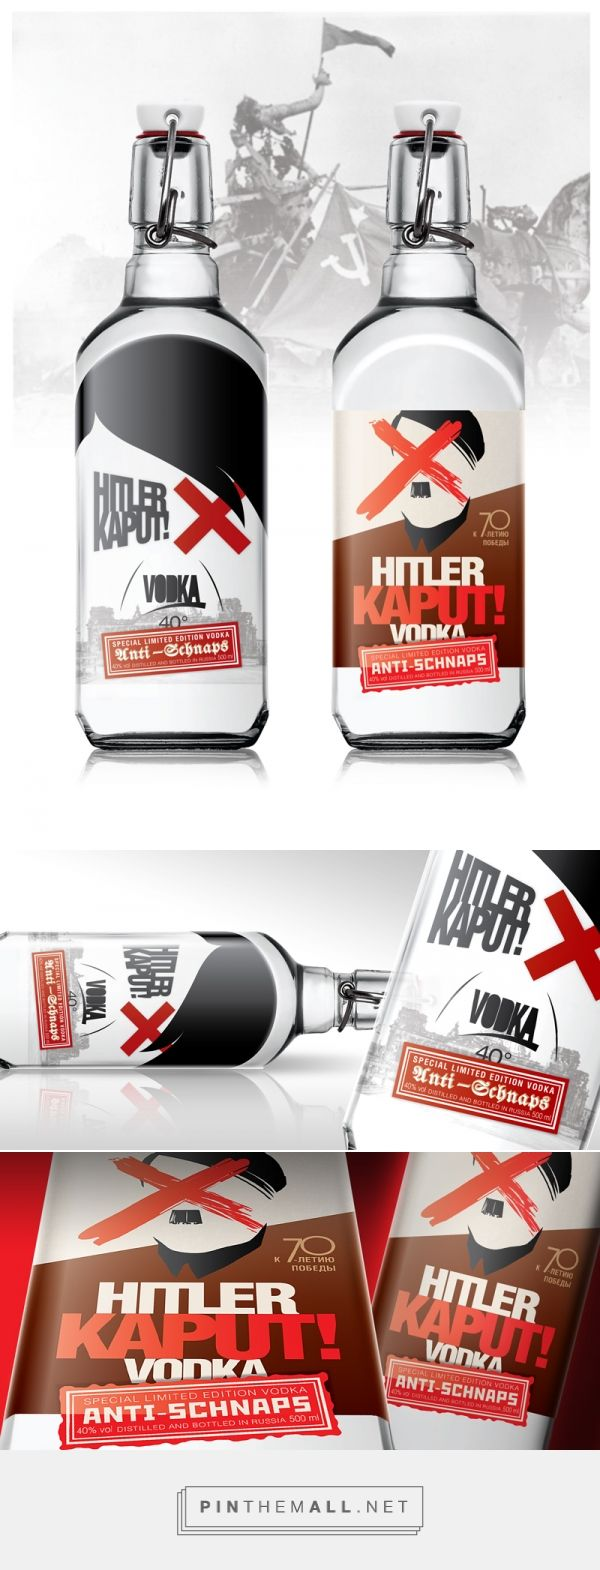 Who wants a glass of Hitler Kaput! Vodka? - Design Concept by Pavel Pimenov (Russia) - http://www.packagingoftheworld.com/2016/05/hitler-kaput-vodka-concept.html